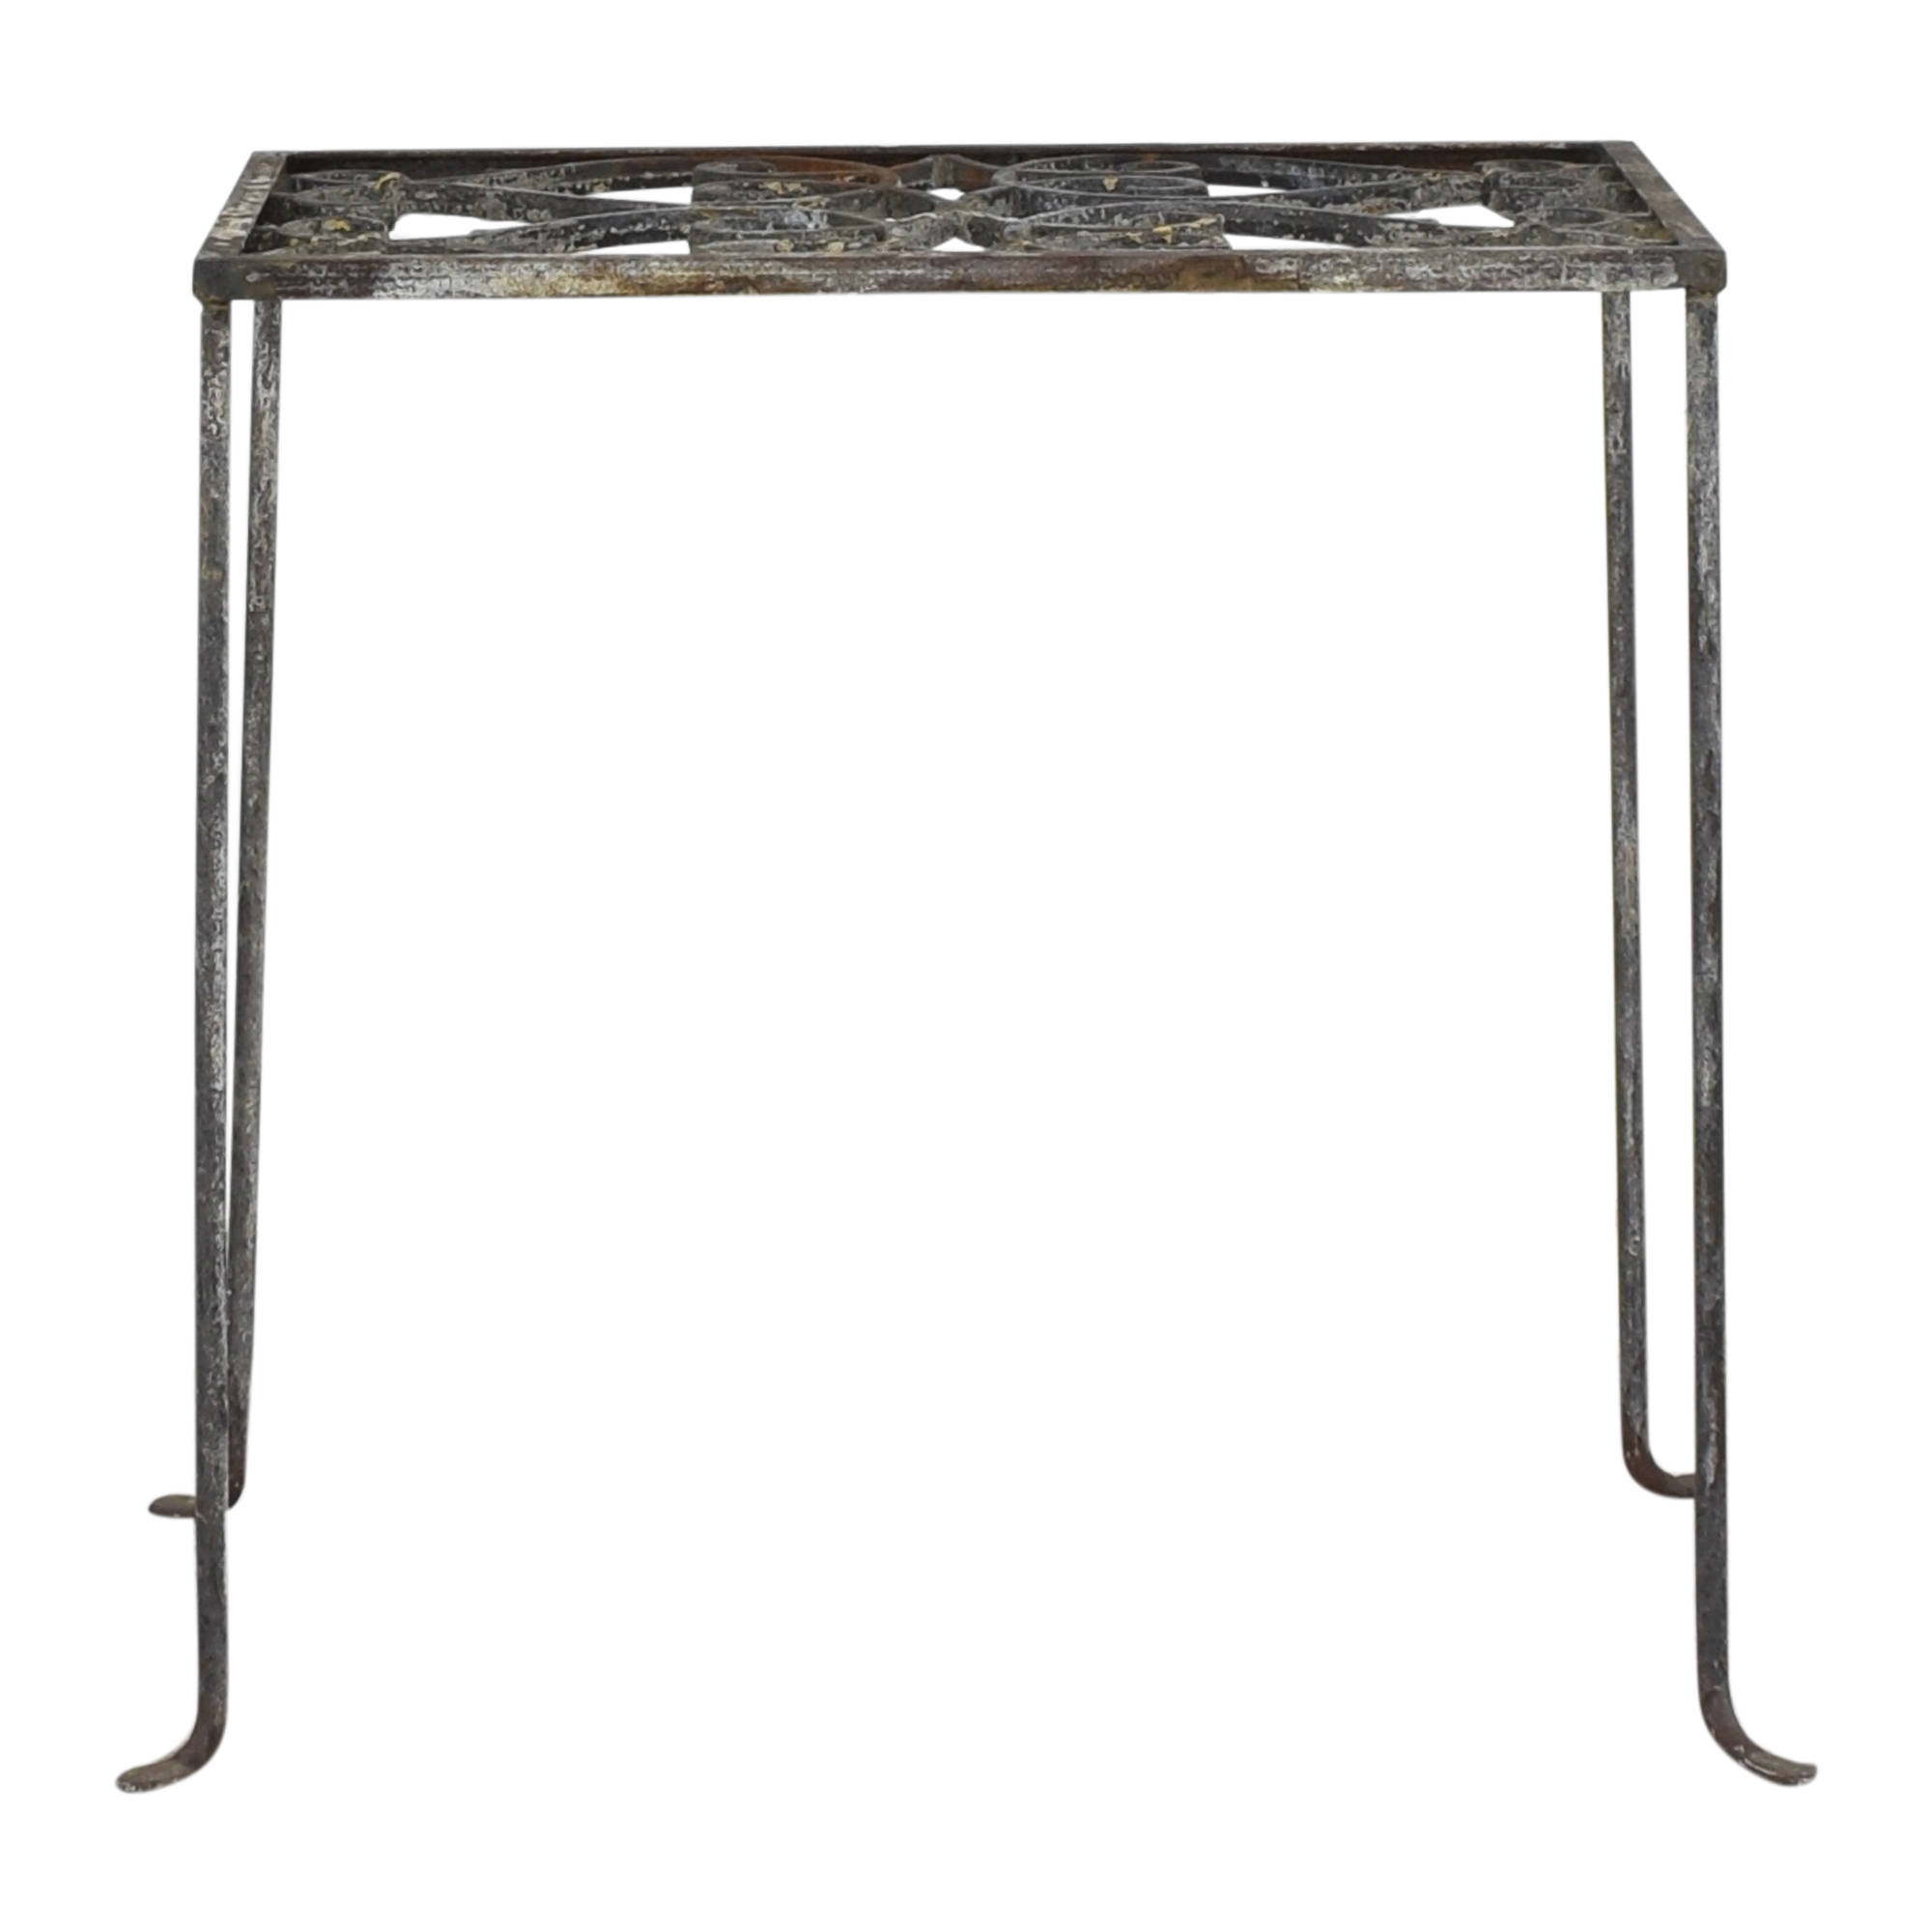 Anthropologie Decorative Accent Table gray